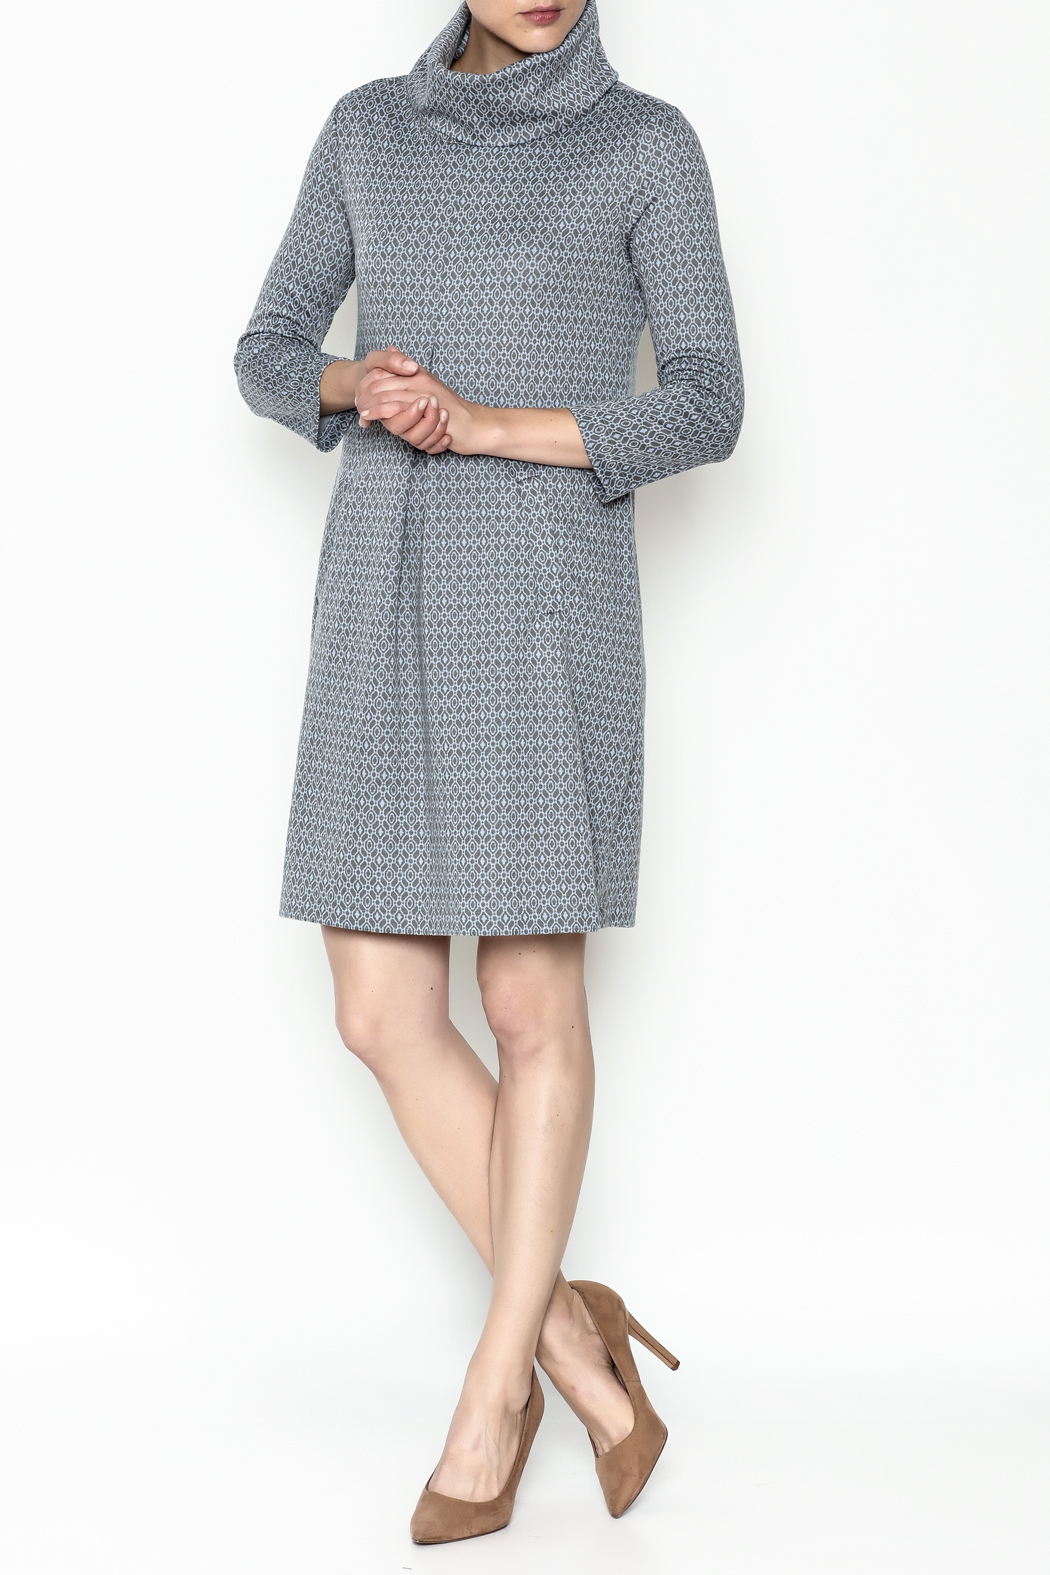 Tyler Boe Kim Cowl Dress - Side Cropped Image